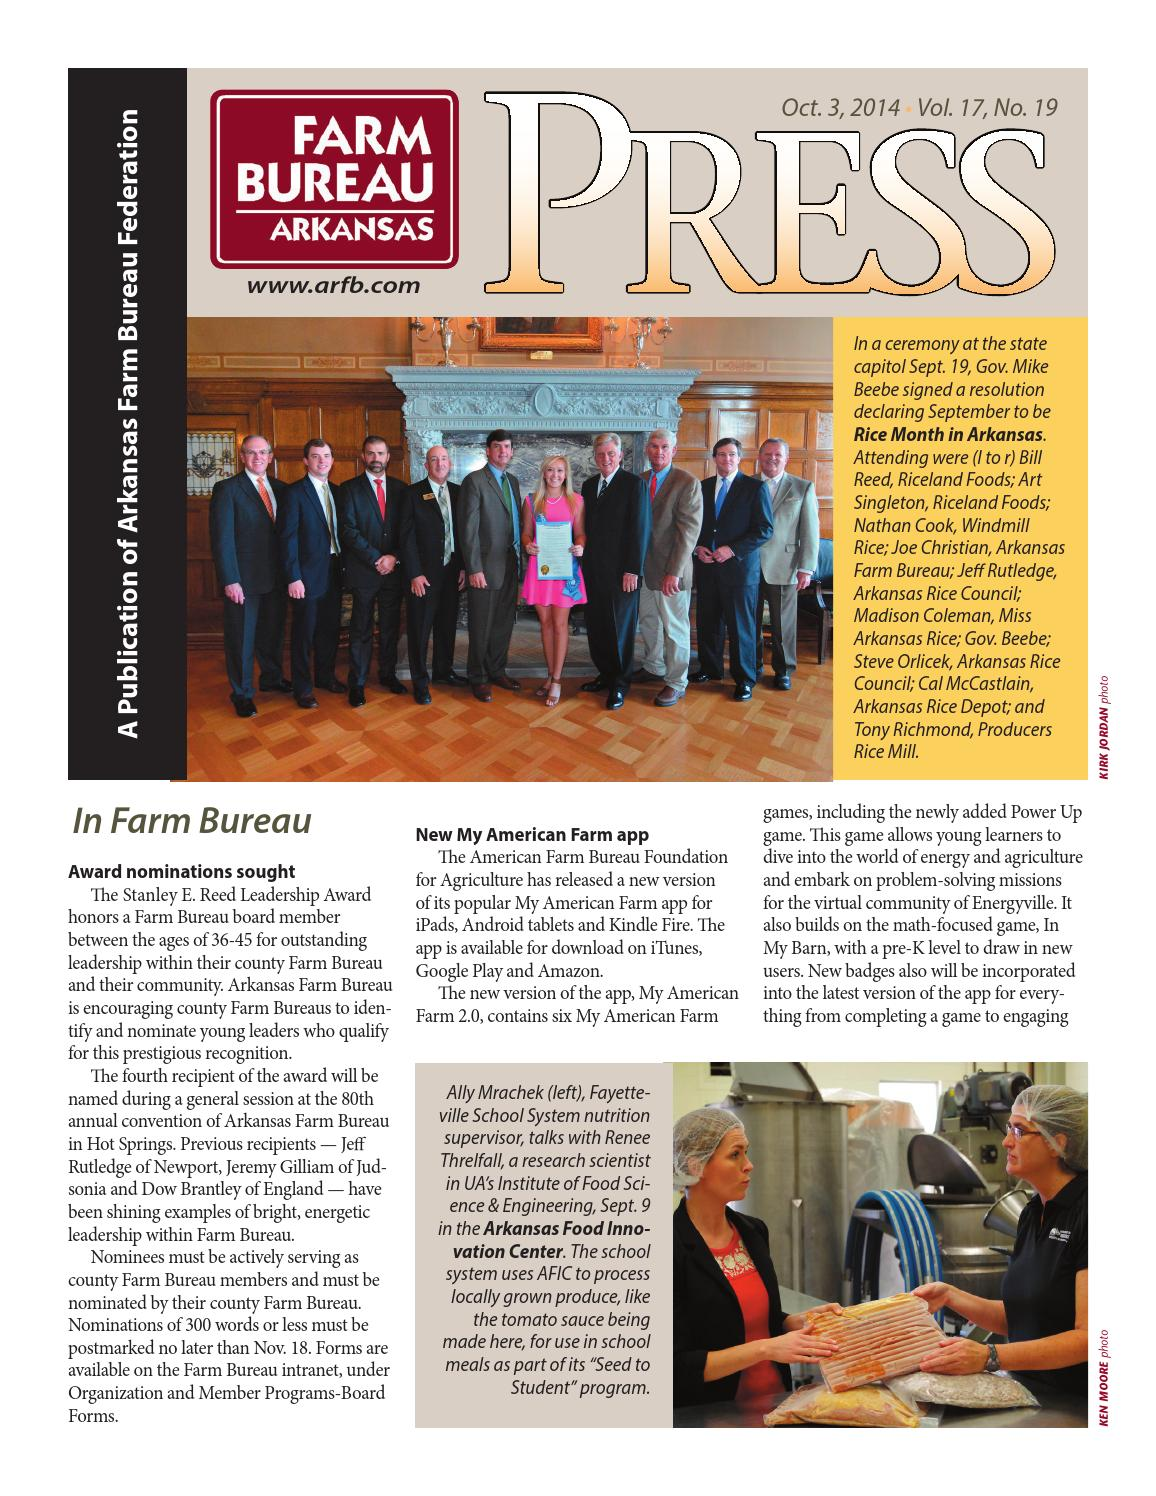 Farm Bureau Press - October 3, 2014 by Arkansas Farm Bureau - issuu